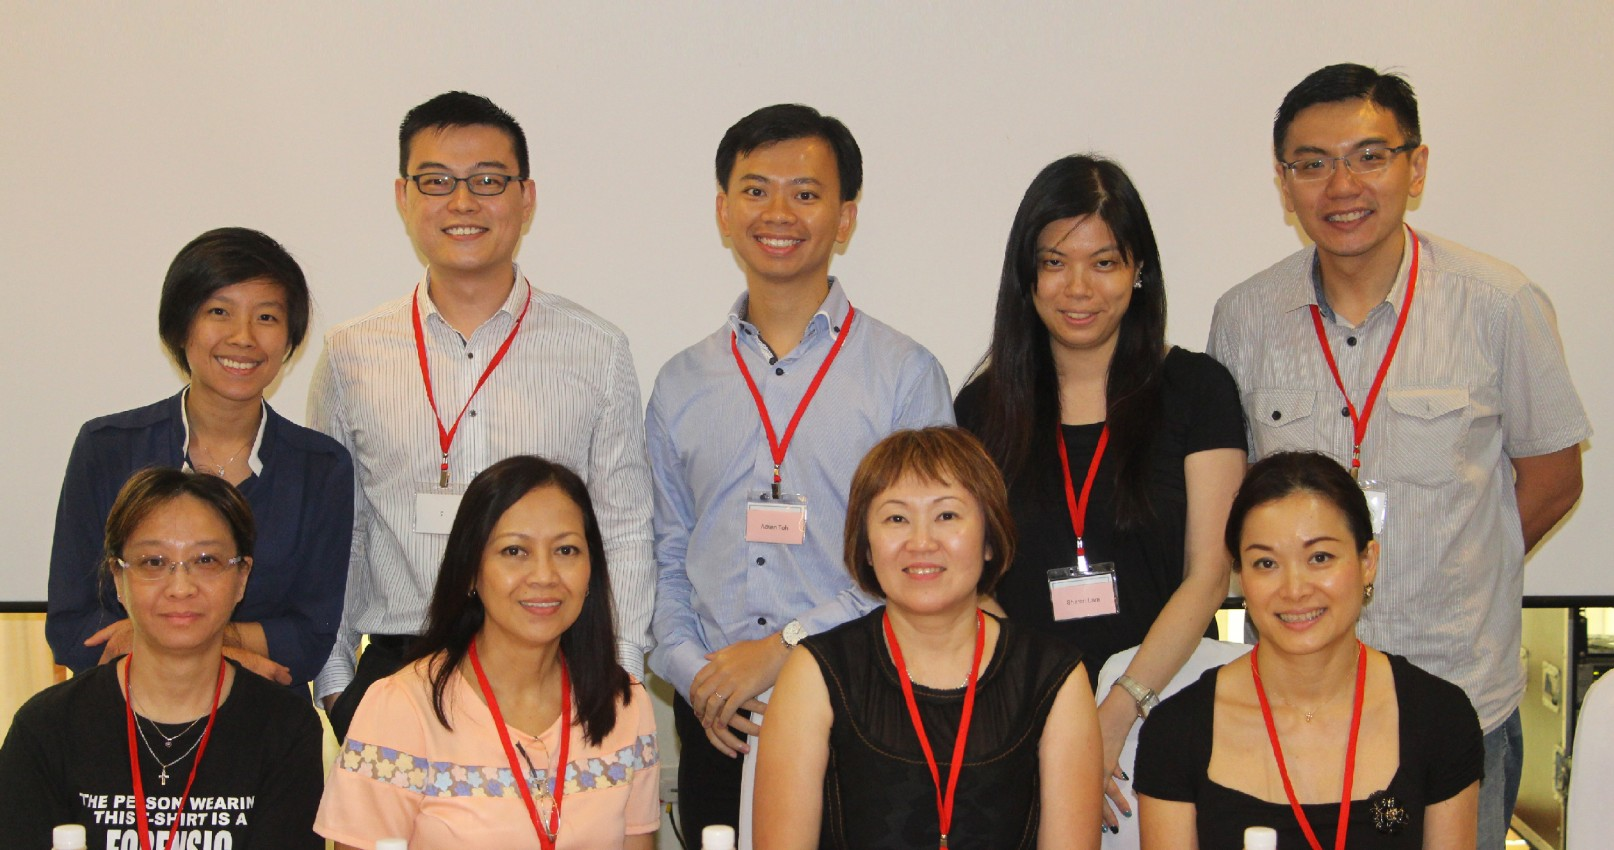 psych Partnering With Singapore Psychological Society